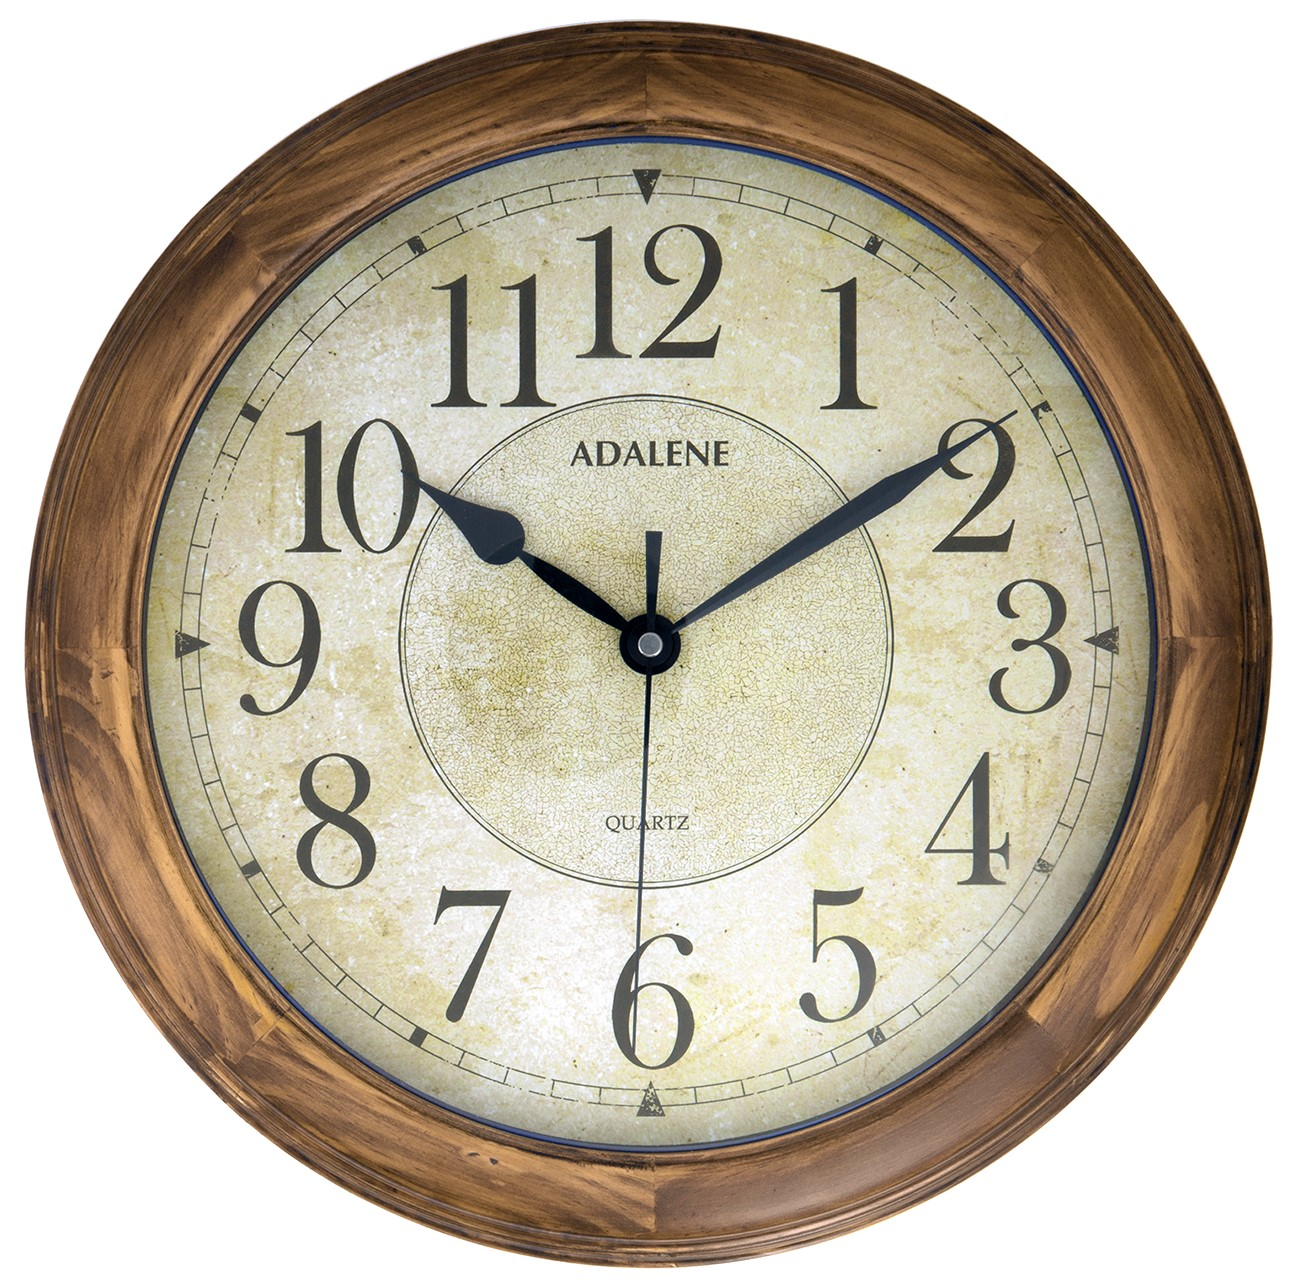 Adalene 14 inch large wall clock decorative living room for Family room wall clocks